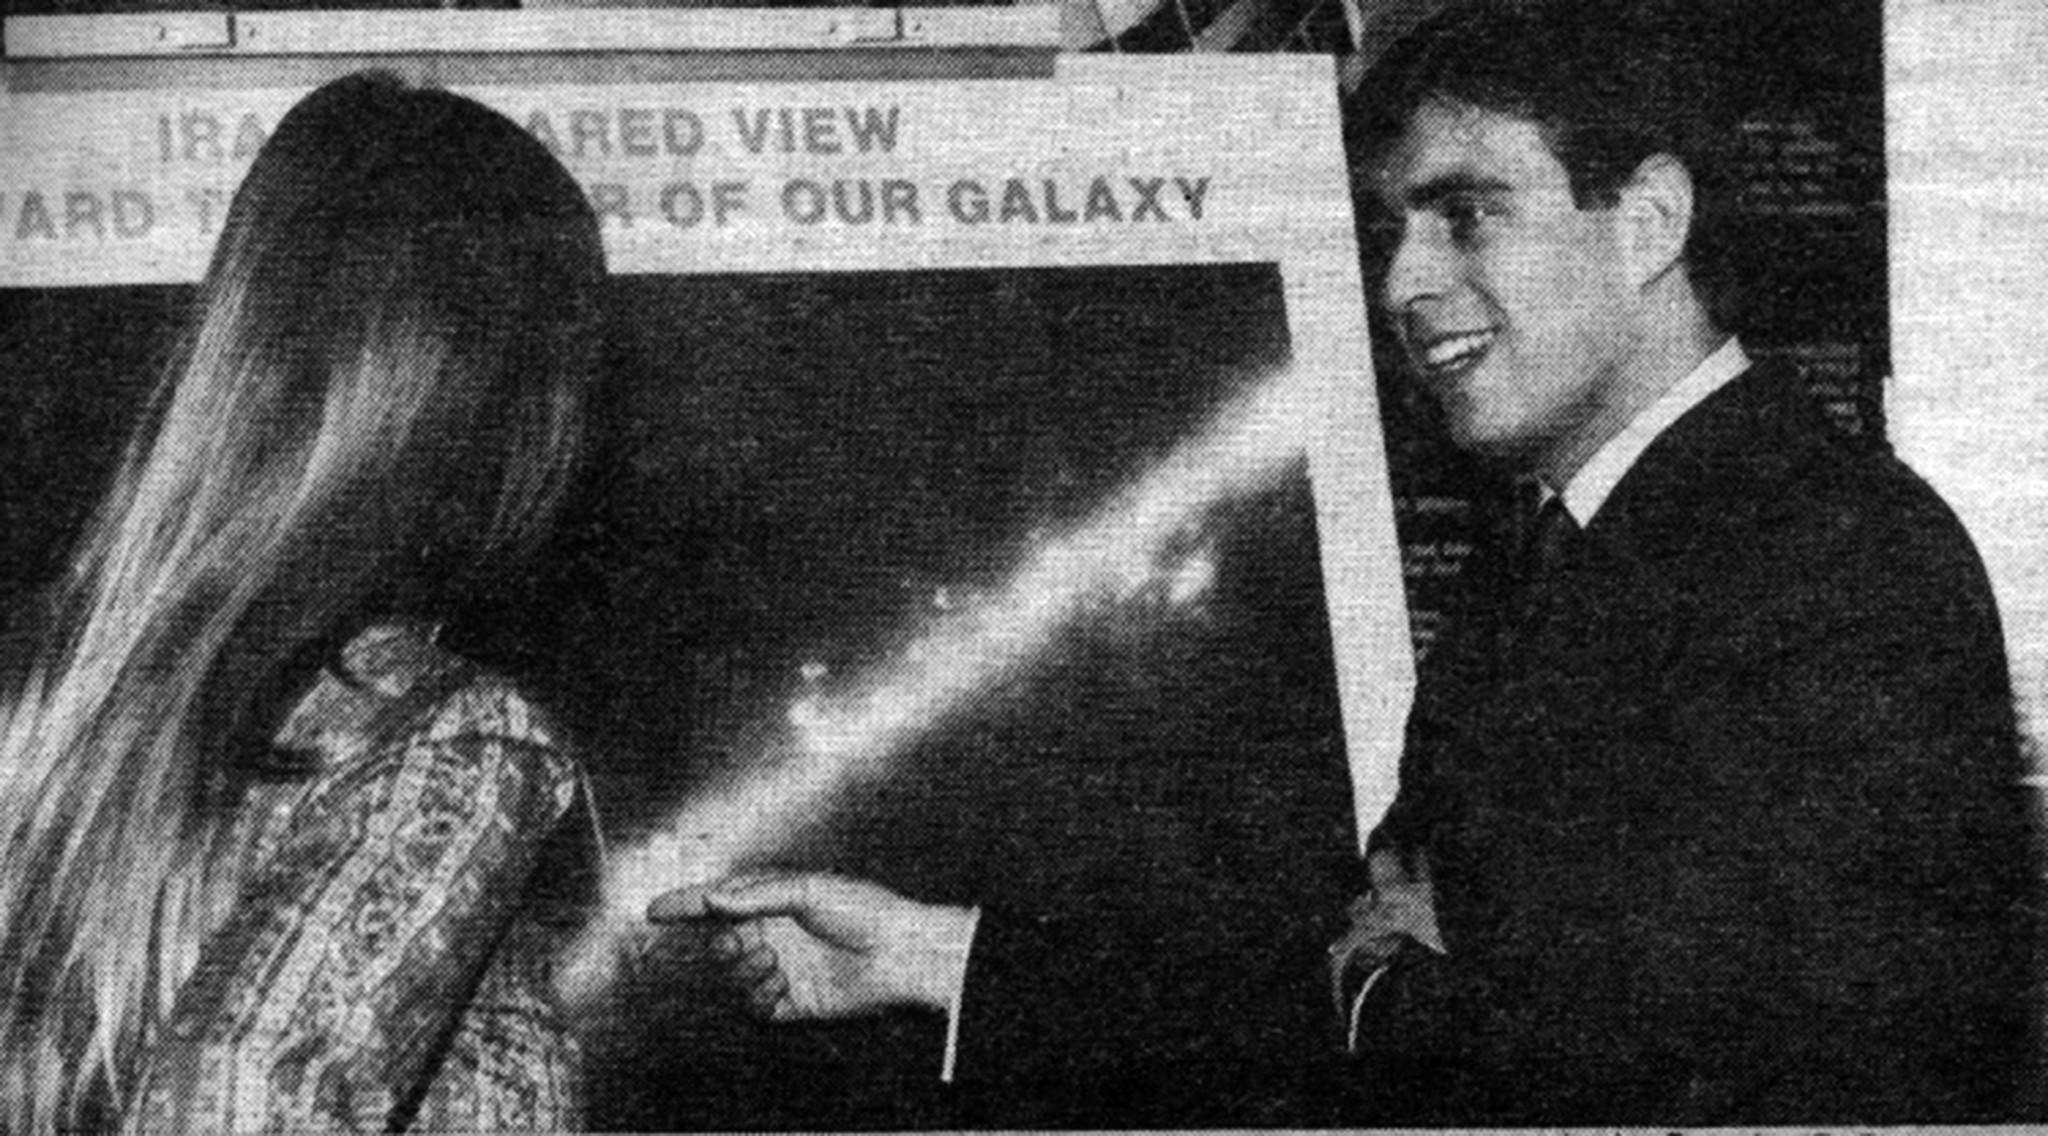 Great Britain's Prince Andrew points to a representation of our galaxy during a 90-minute tour of the Jet Propulsion Laboratory in April 1984. With him is Dr. Carol Persoon.